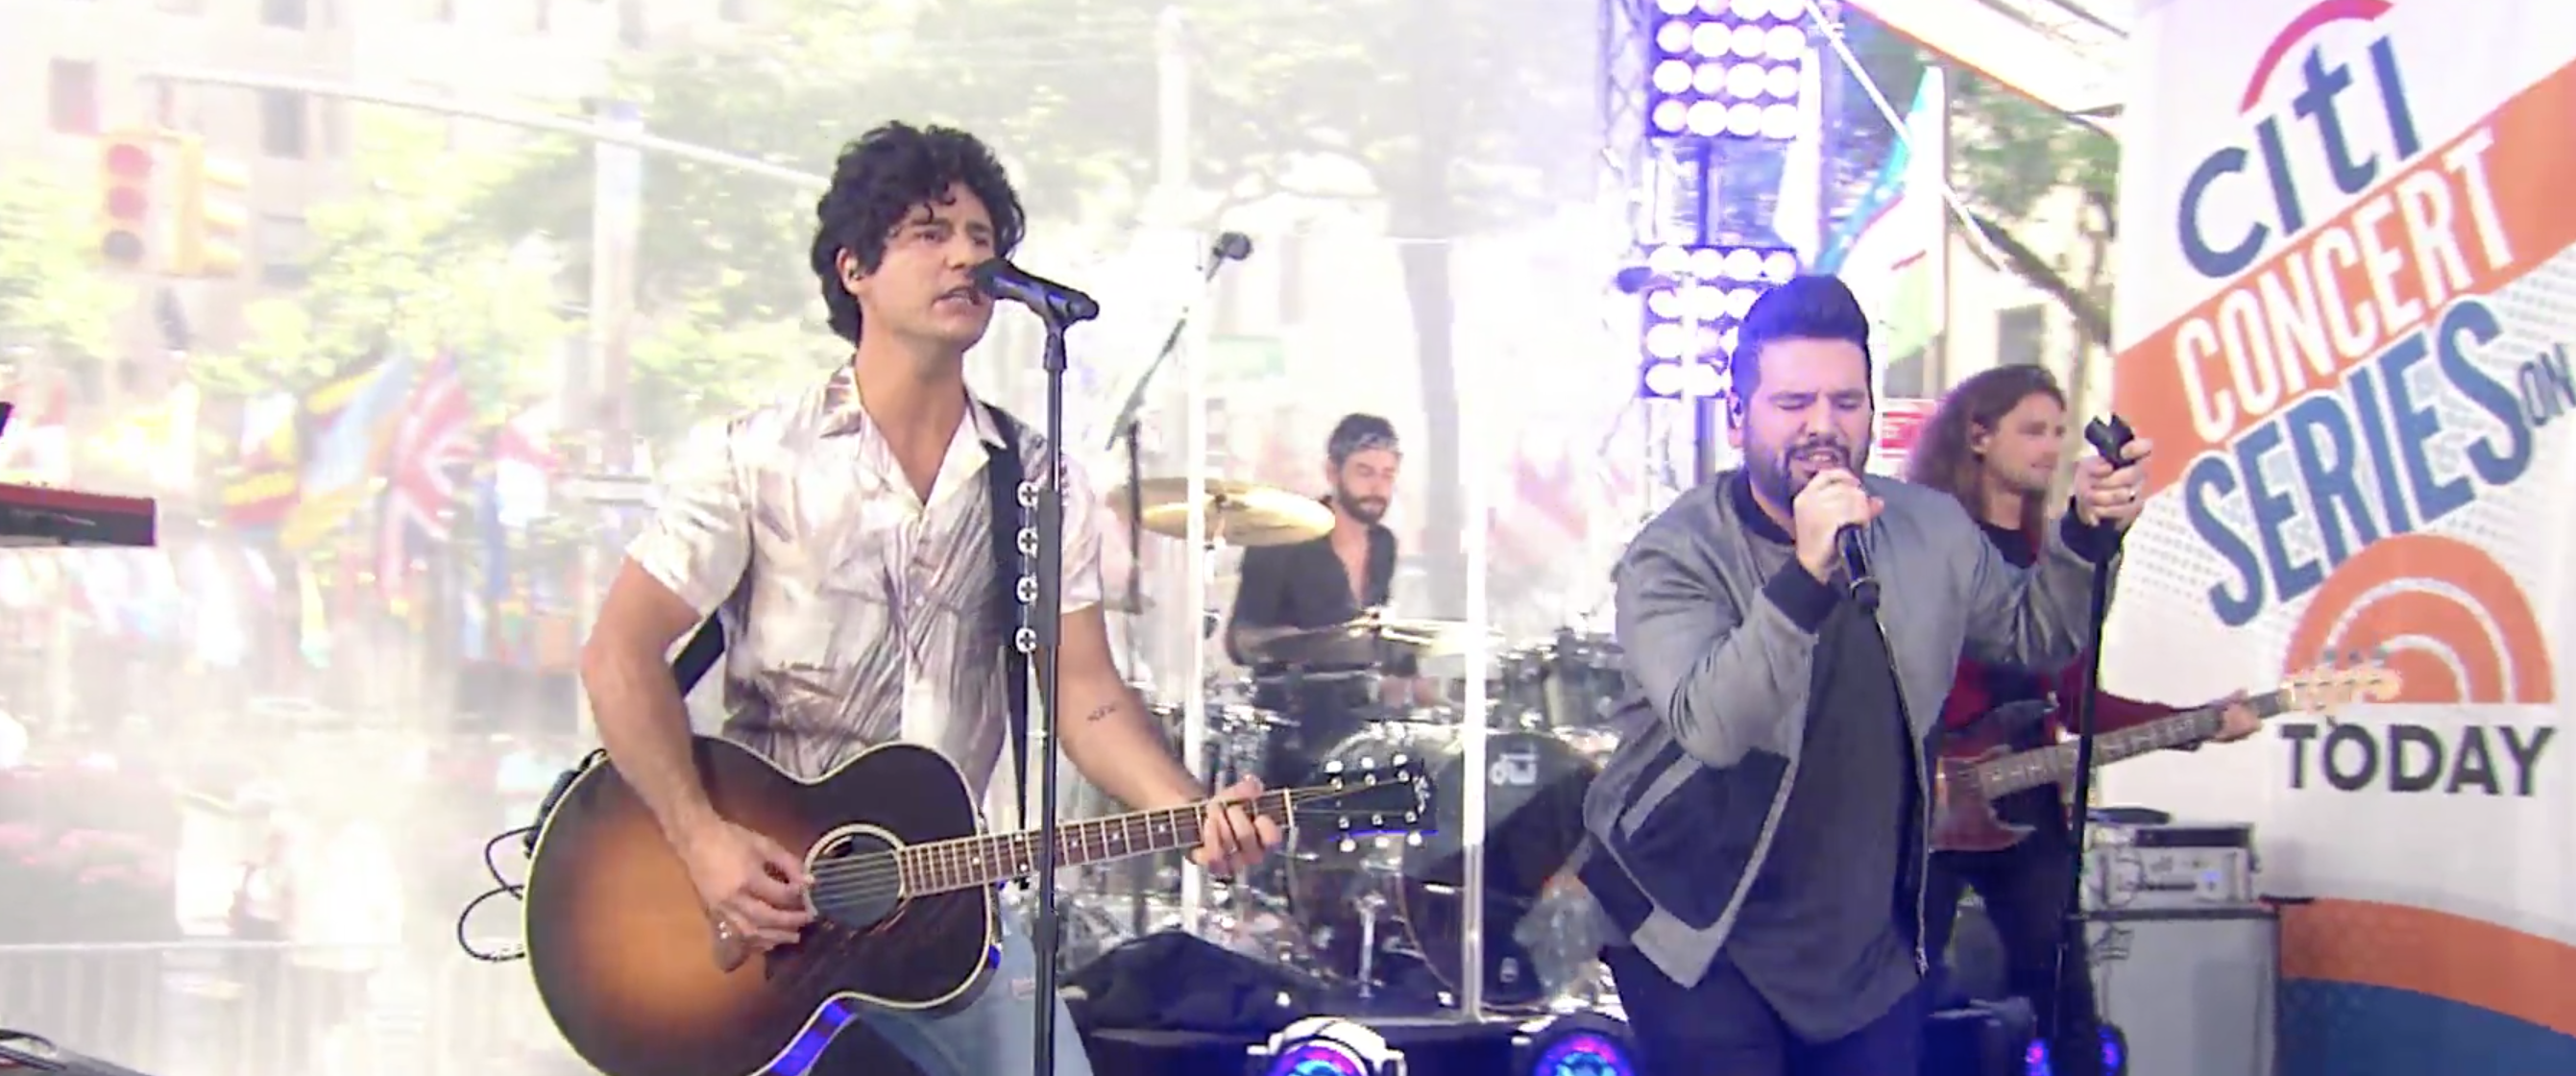 Dan + Shay Bring Streaming Hit 'Tequila' to 'Today Show